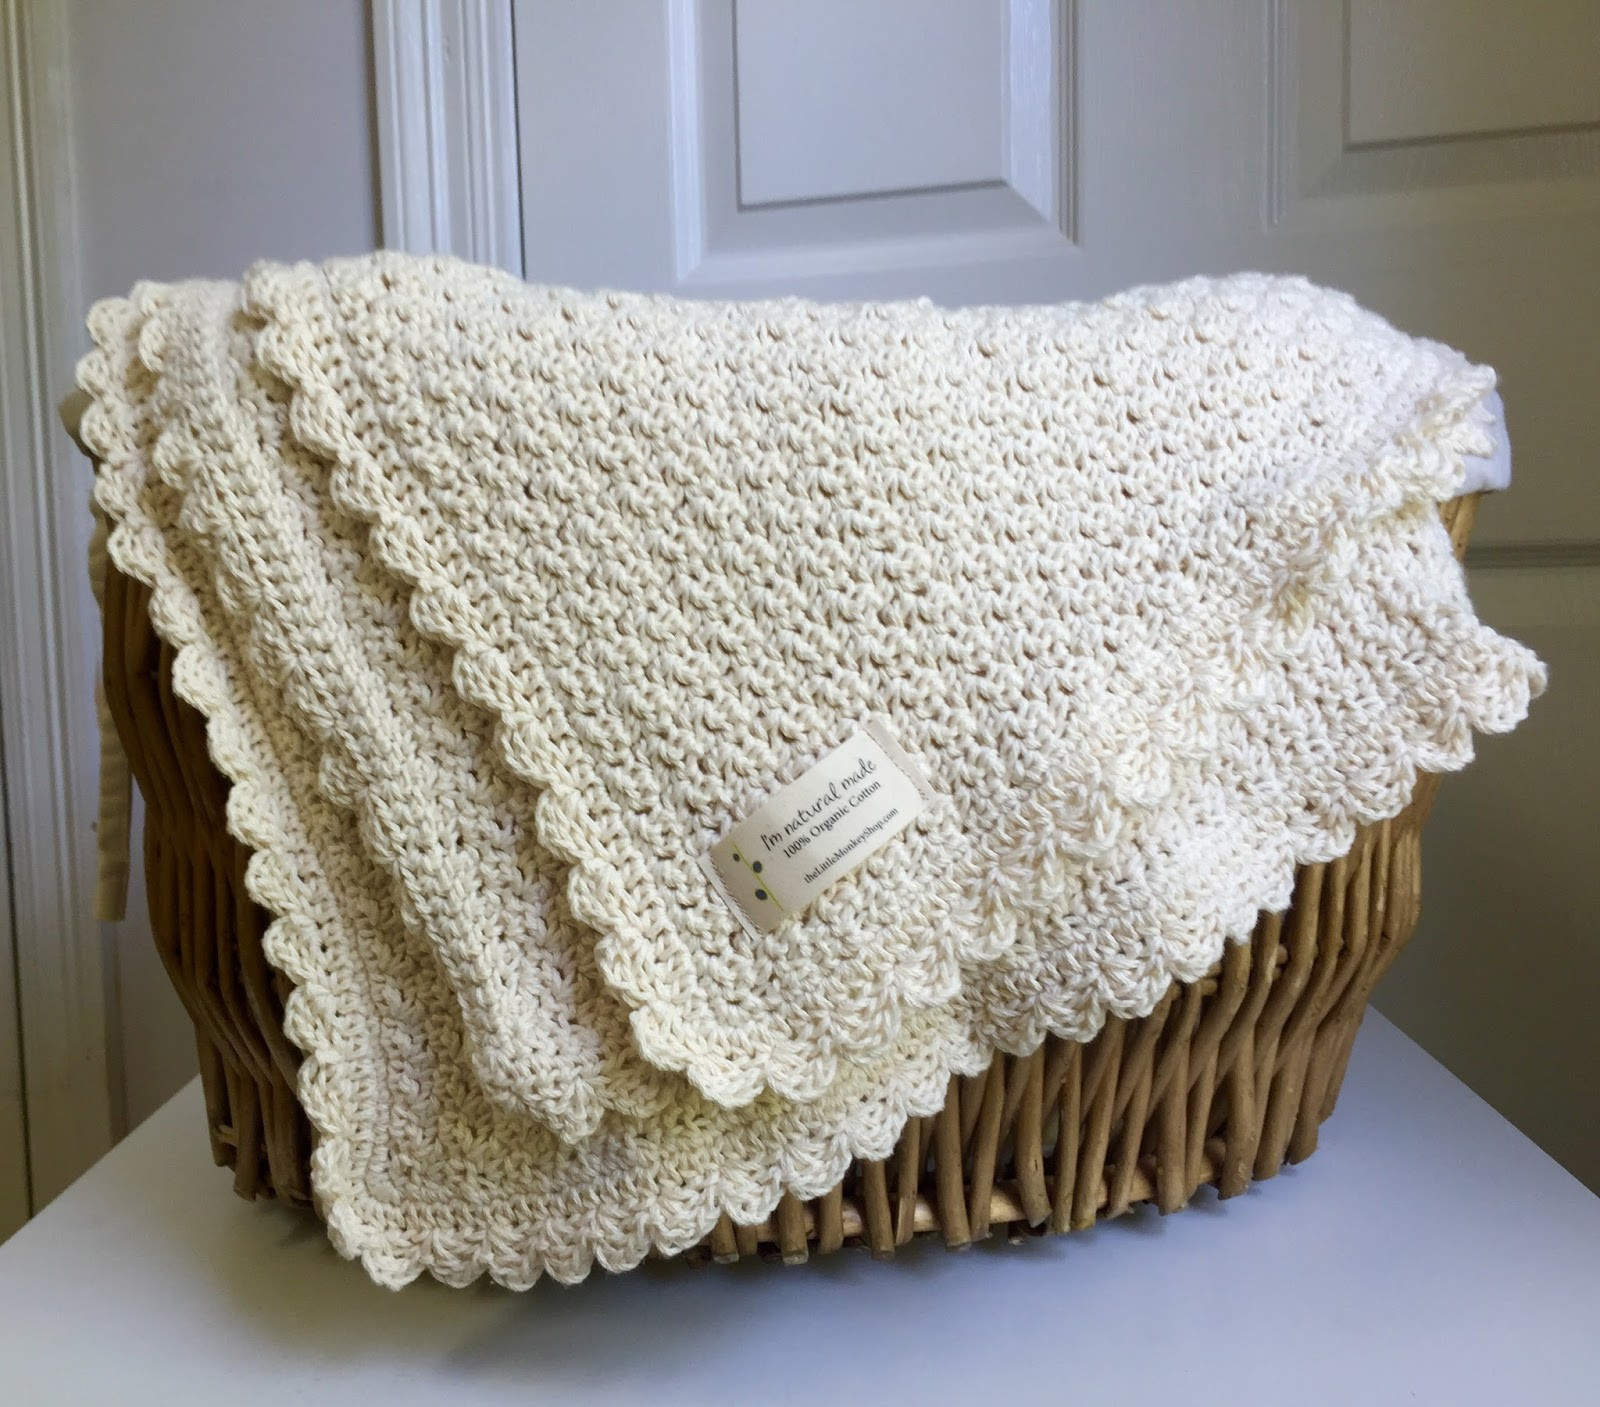 Crochet Patterns for Baby Blankets Awesome Pure and Simple Baby Blanket A Simply Beautiful Crochet Of Great 50 Photos Crochet Patterns for Baby Blankets